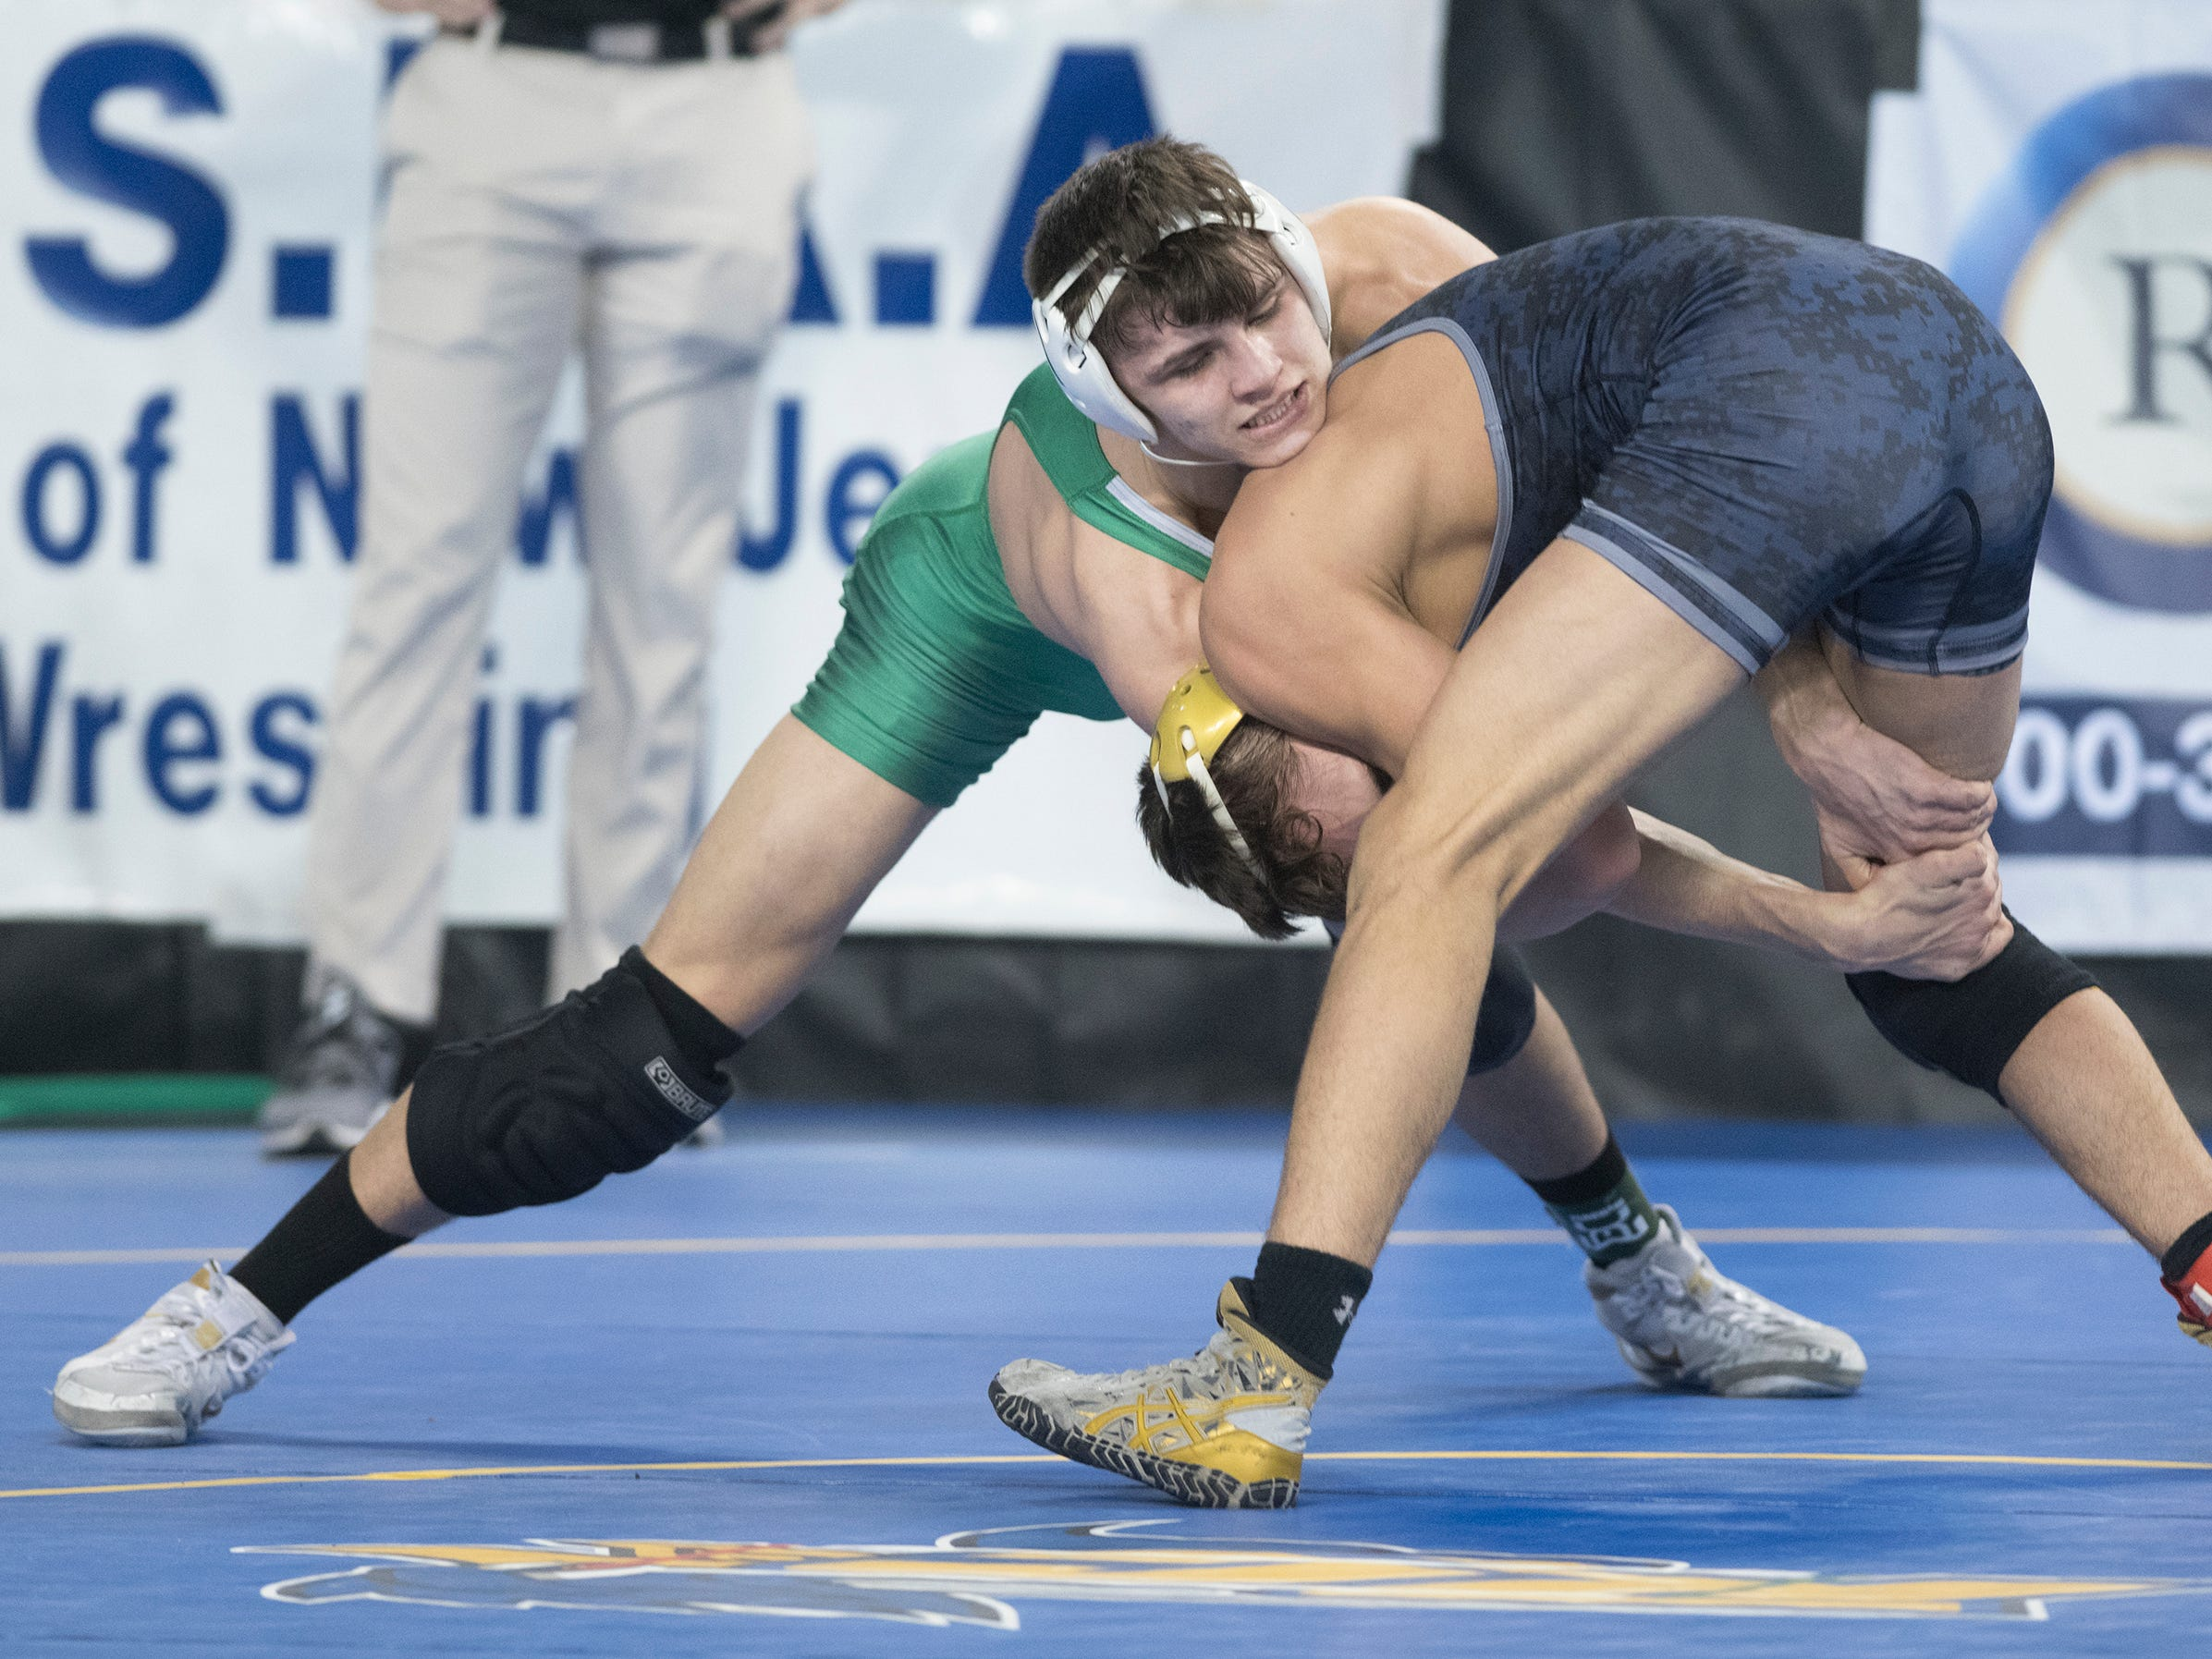 West Deptford's Corey Fischer, left, battles Clayton/Glassboro's Jacob Rodriguez for a take down during a 160 lb. pre-quarterfinal round bout during the 2019 NJSIAA State Wrestling Championships tournament held at Boardwalk Hall in Atlantic City on Thursday, February 28, 2019.  Fischer won, 5-1.